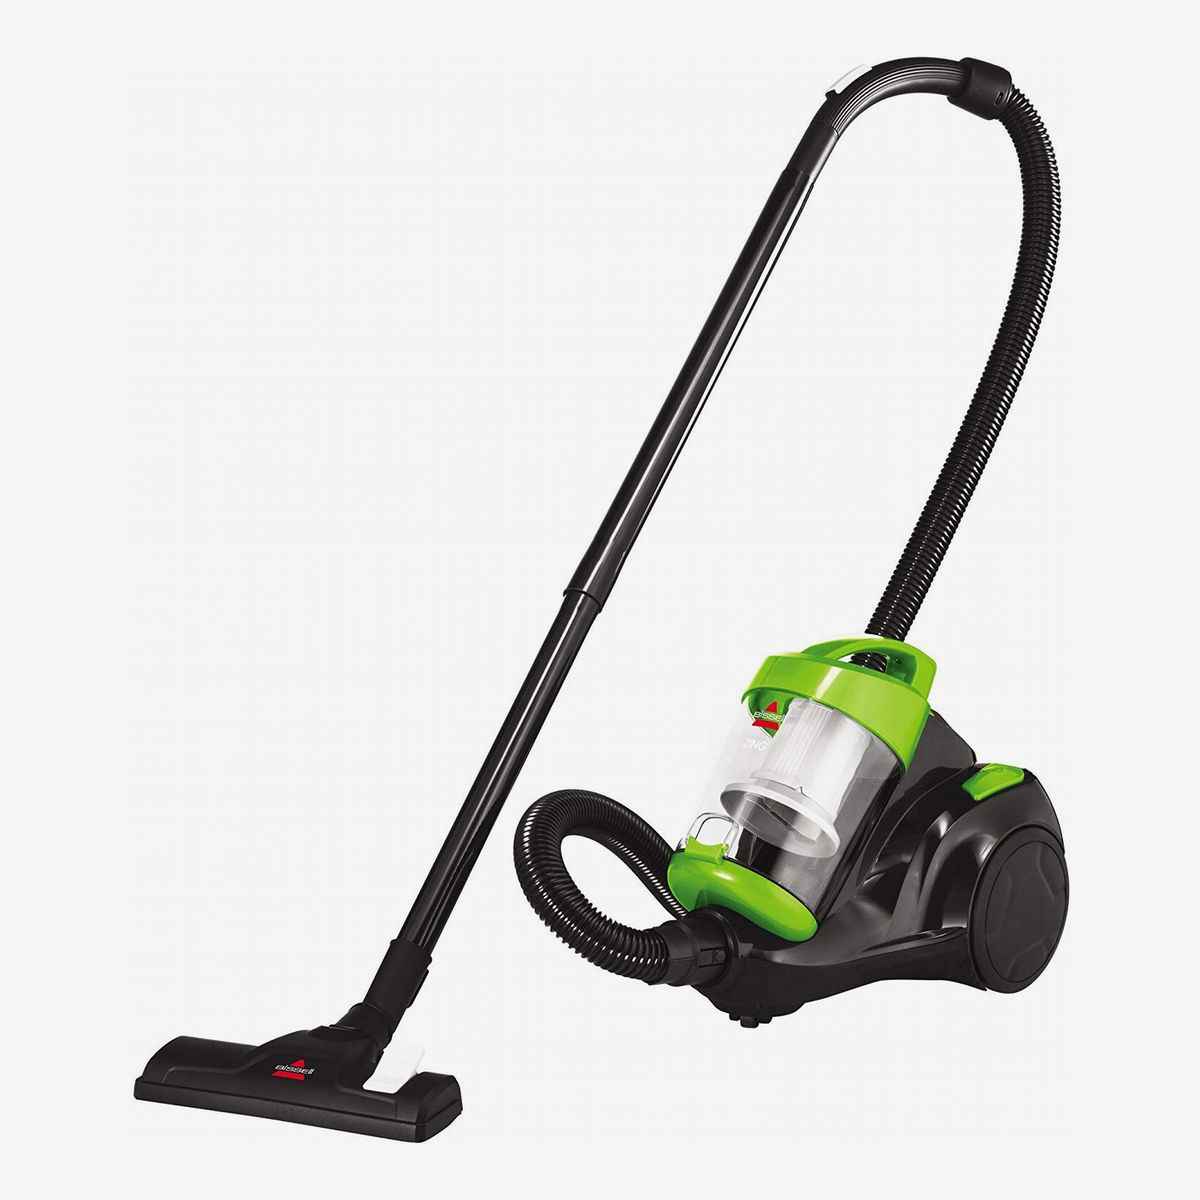 Image result for vacuums reviews